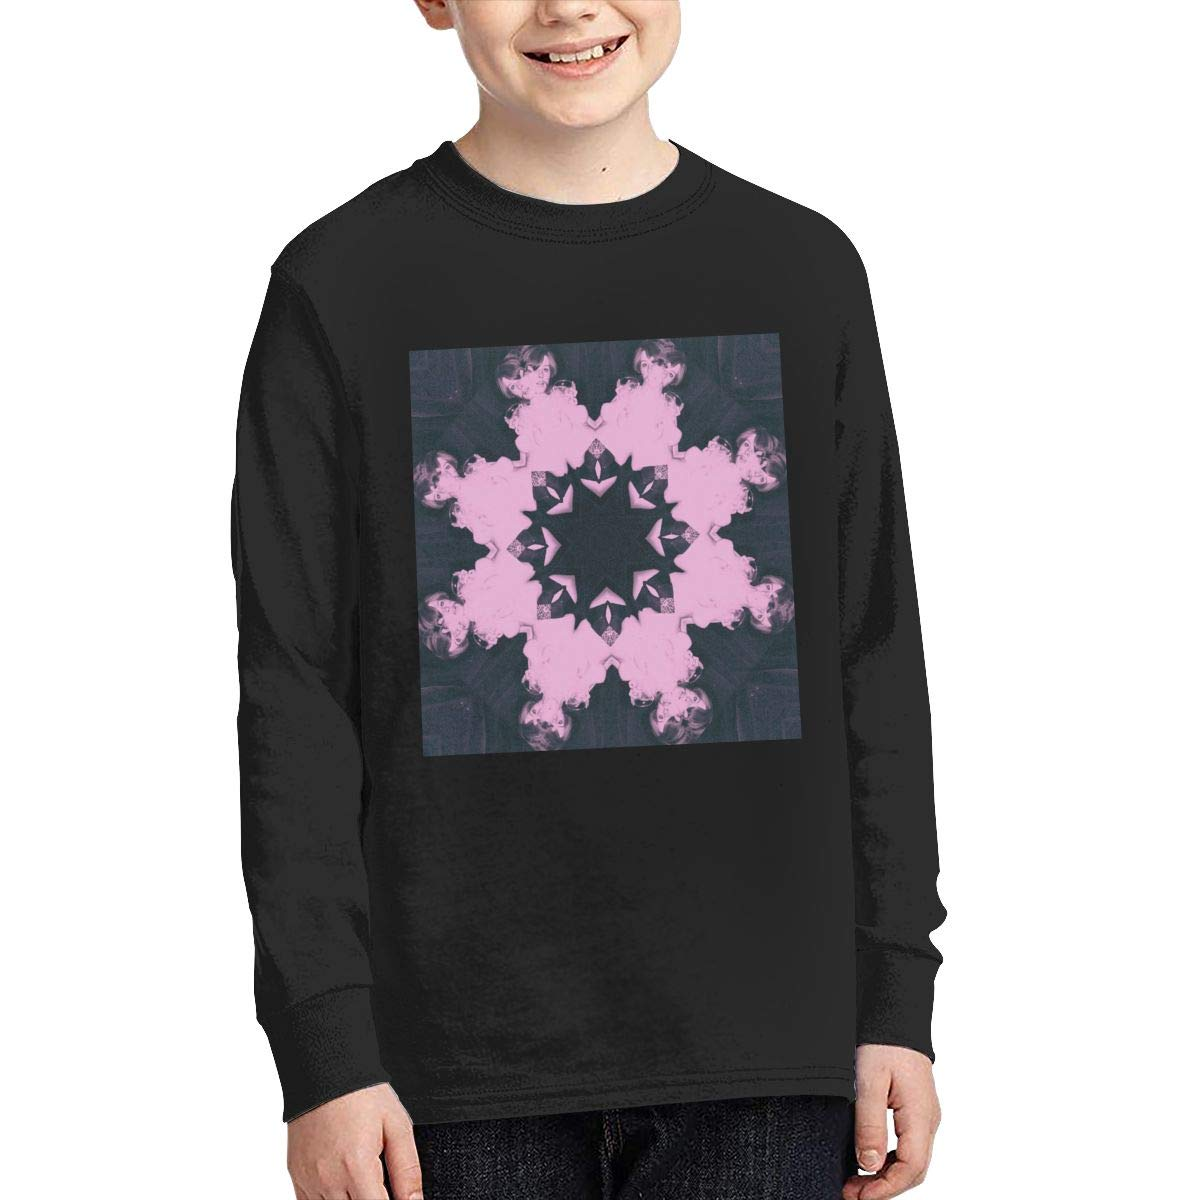 MichaelHazzard Flume Youth Comfortable Long Sleeve Crewneck Tee T-Shirt for Boys and Girls